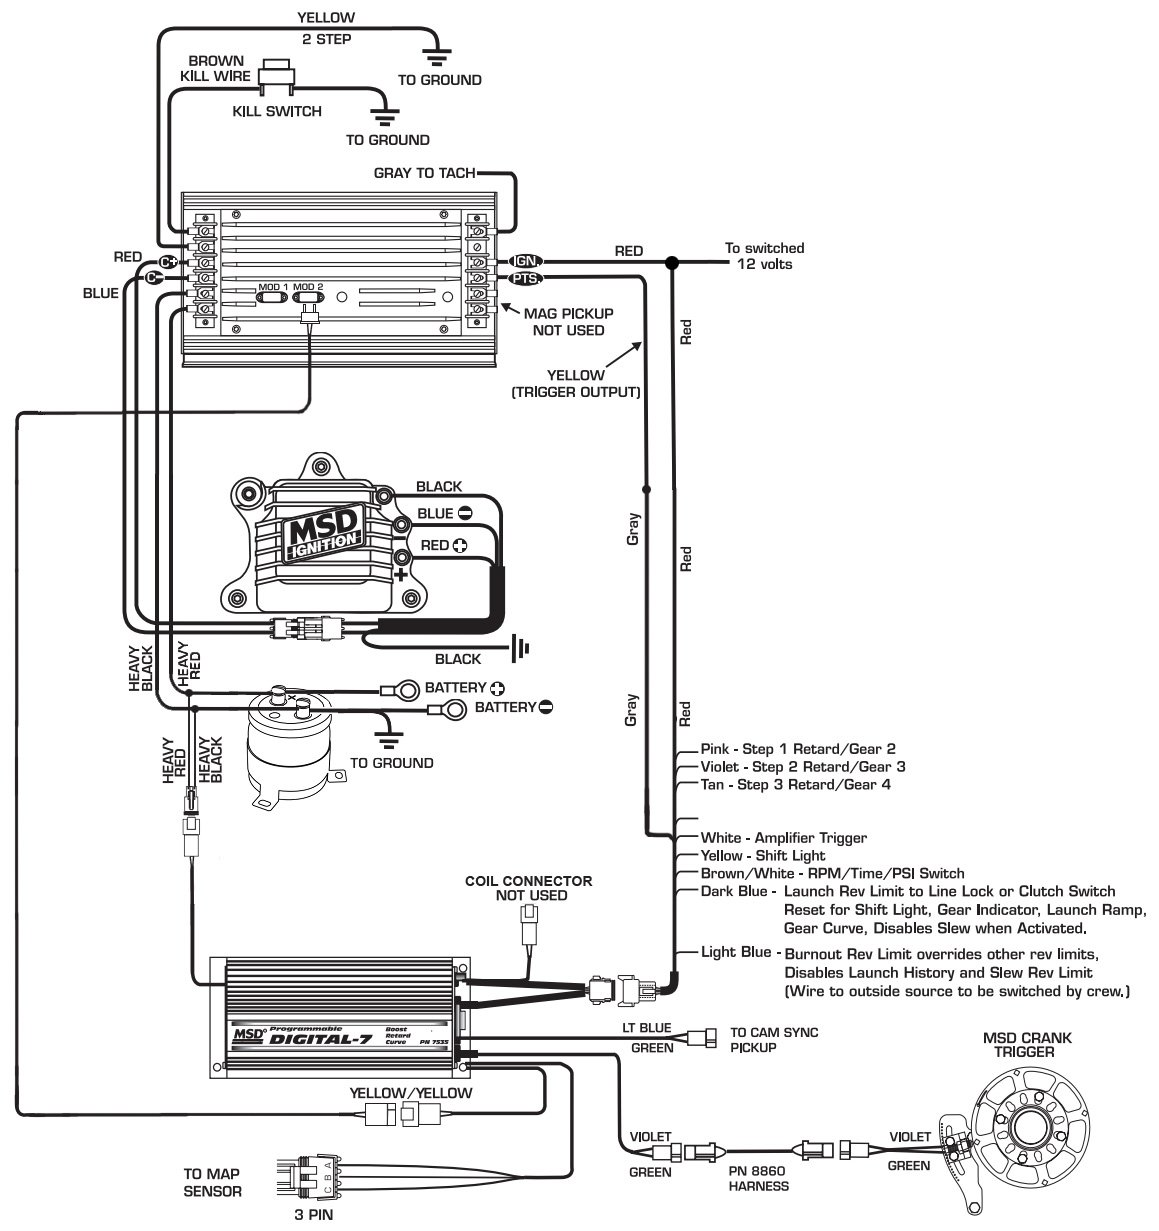 7531 mad wiring diagram